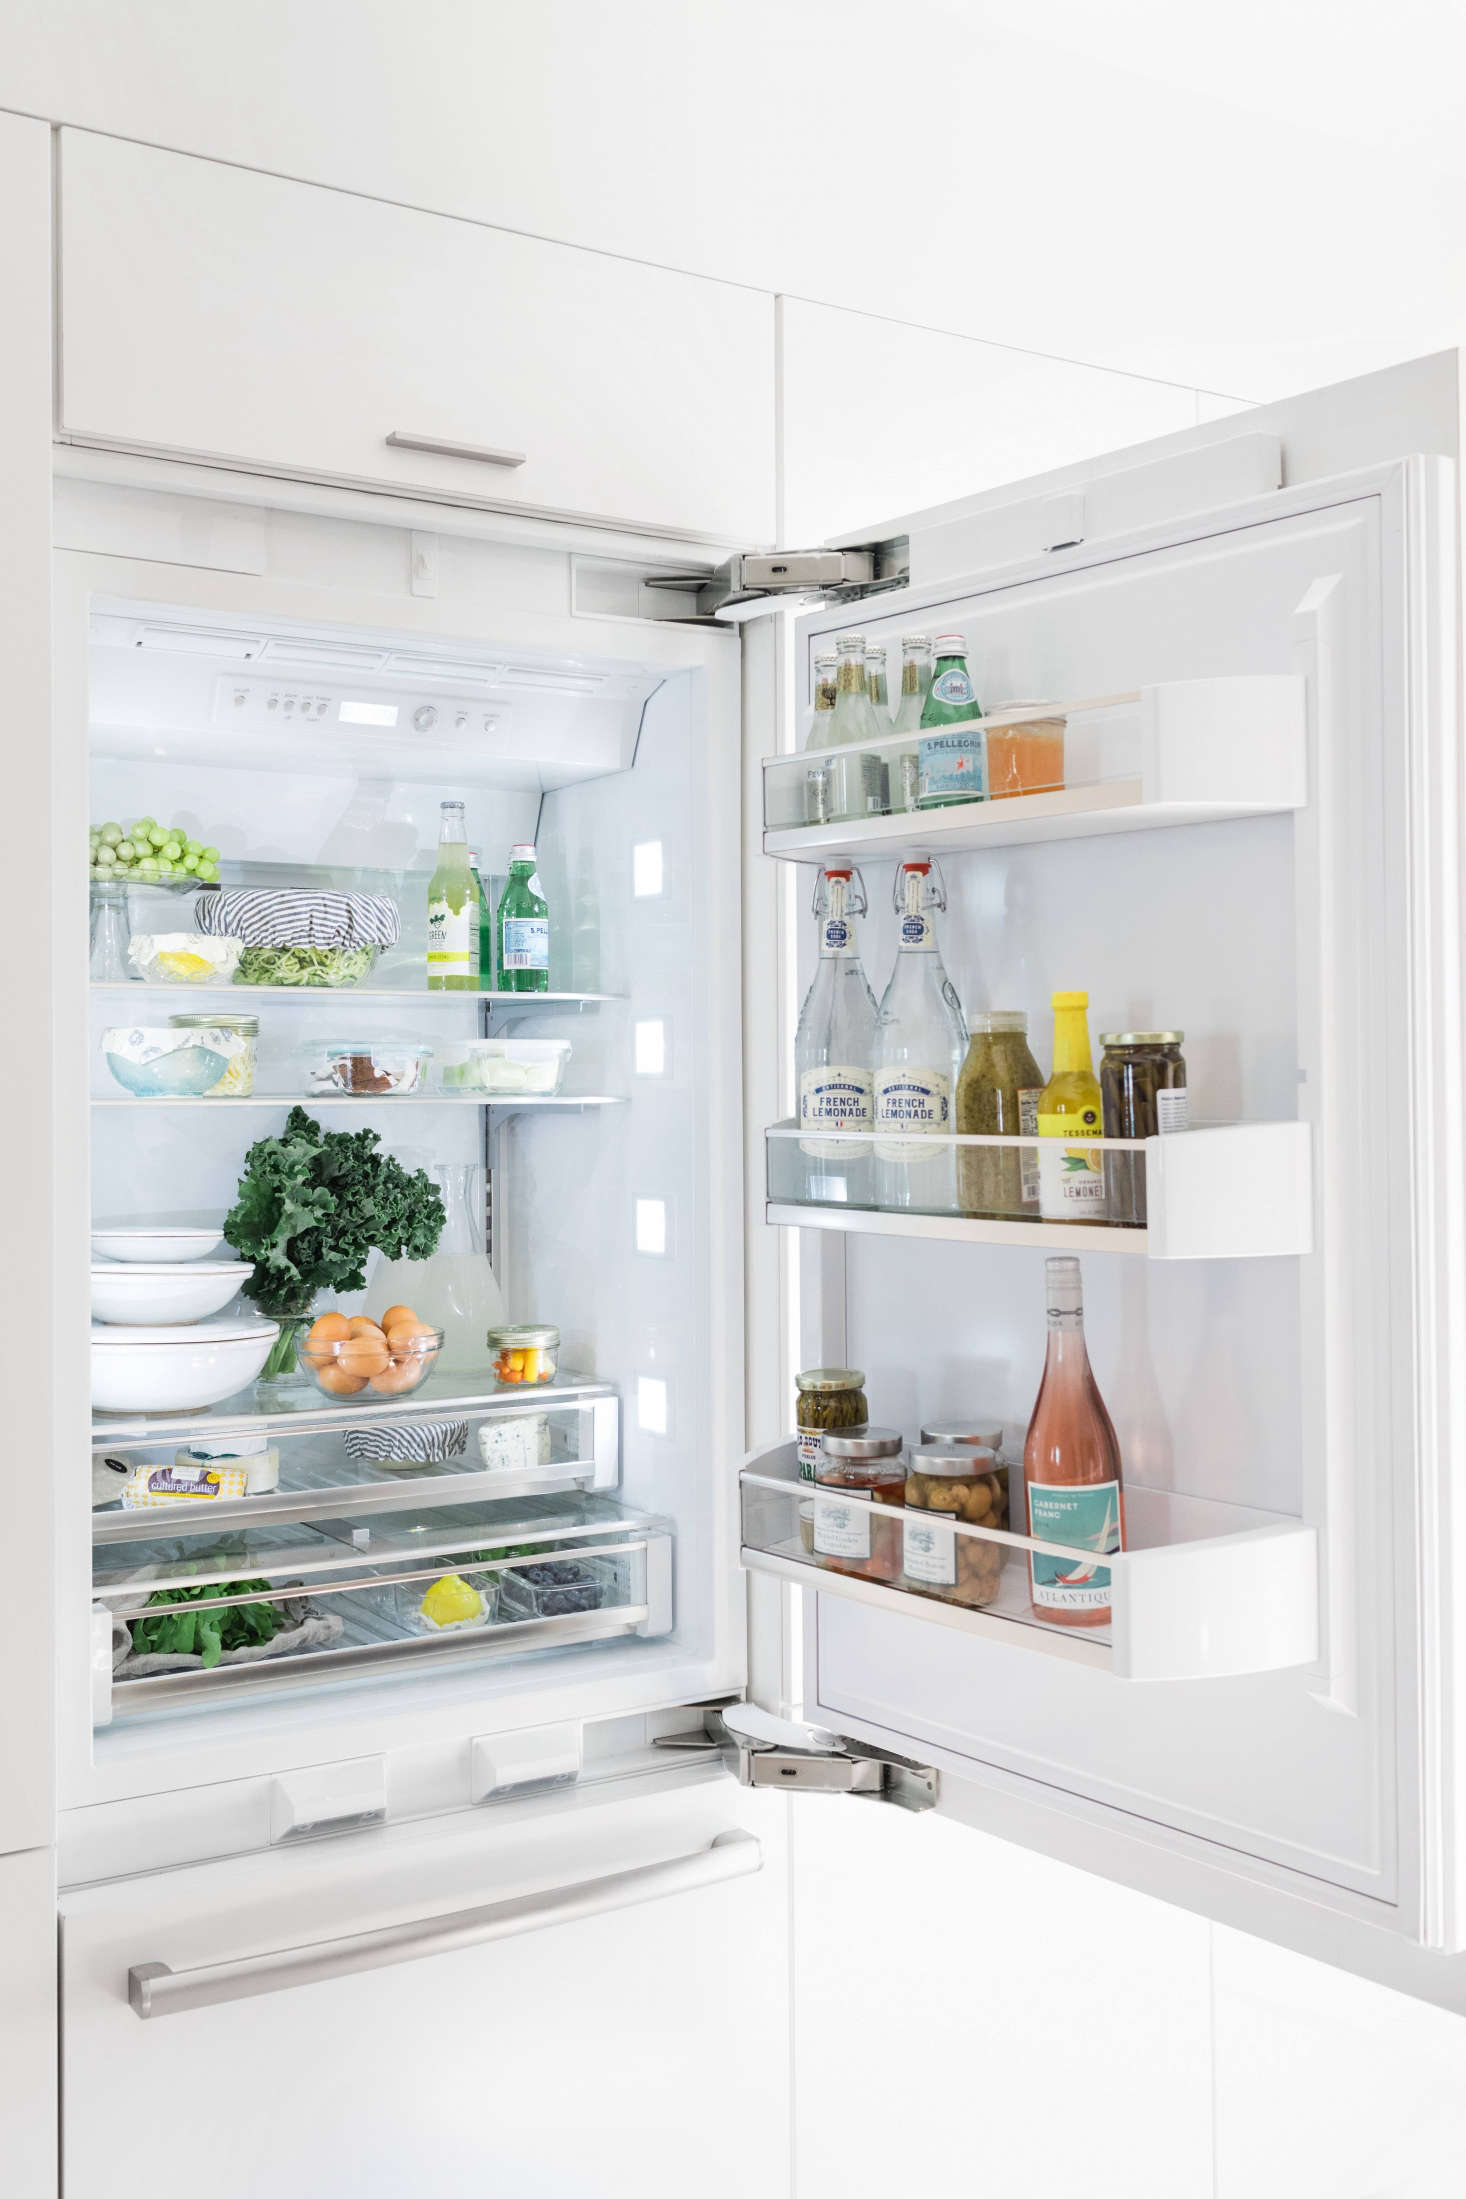 The Energy Star qualified Bosch 30-Inch Built-In Custom Panel Refrigerator has a dual compressor and dual evaporator which keeps food fresher, prevents freezer burn, and limits transfer of odors.